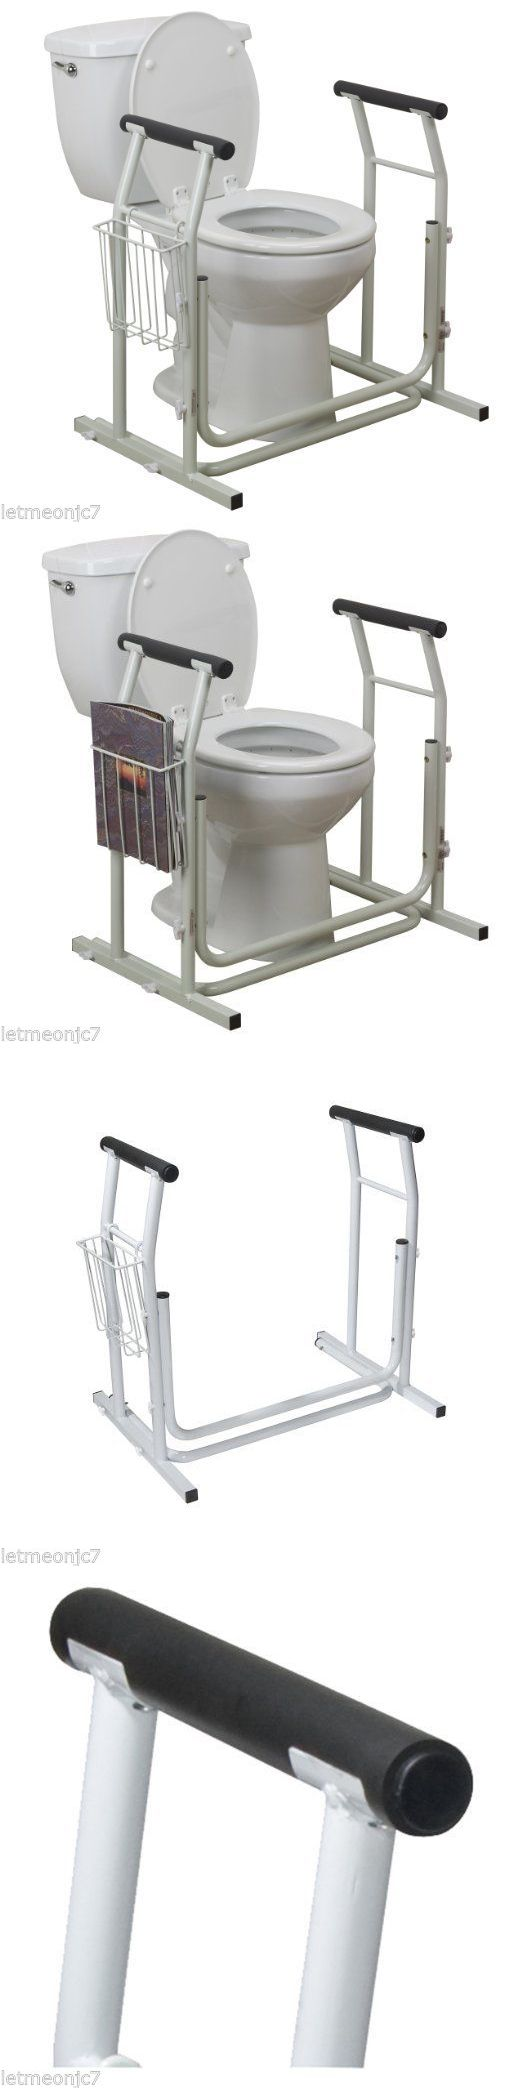 Handles and Rails: Driver Medical Stand Alone Toilet Safety Rail Frame Support Bathroom Grab Bar BUY IT NOW ONLY: $47.85